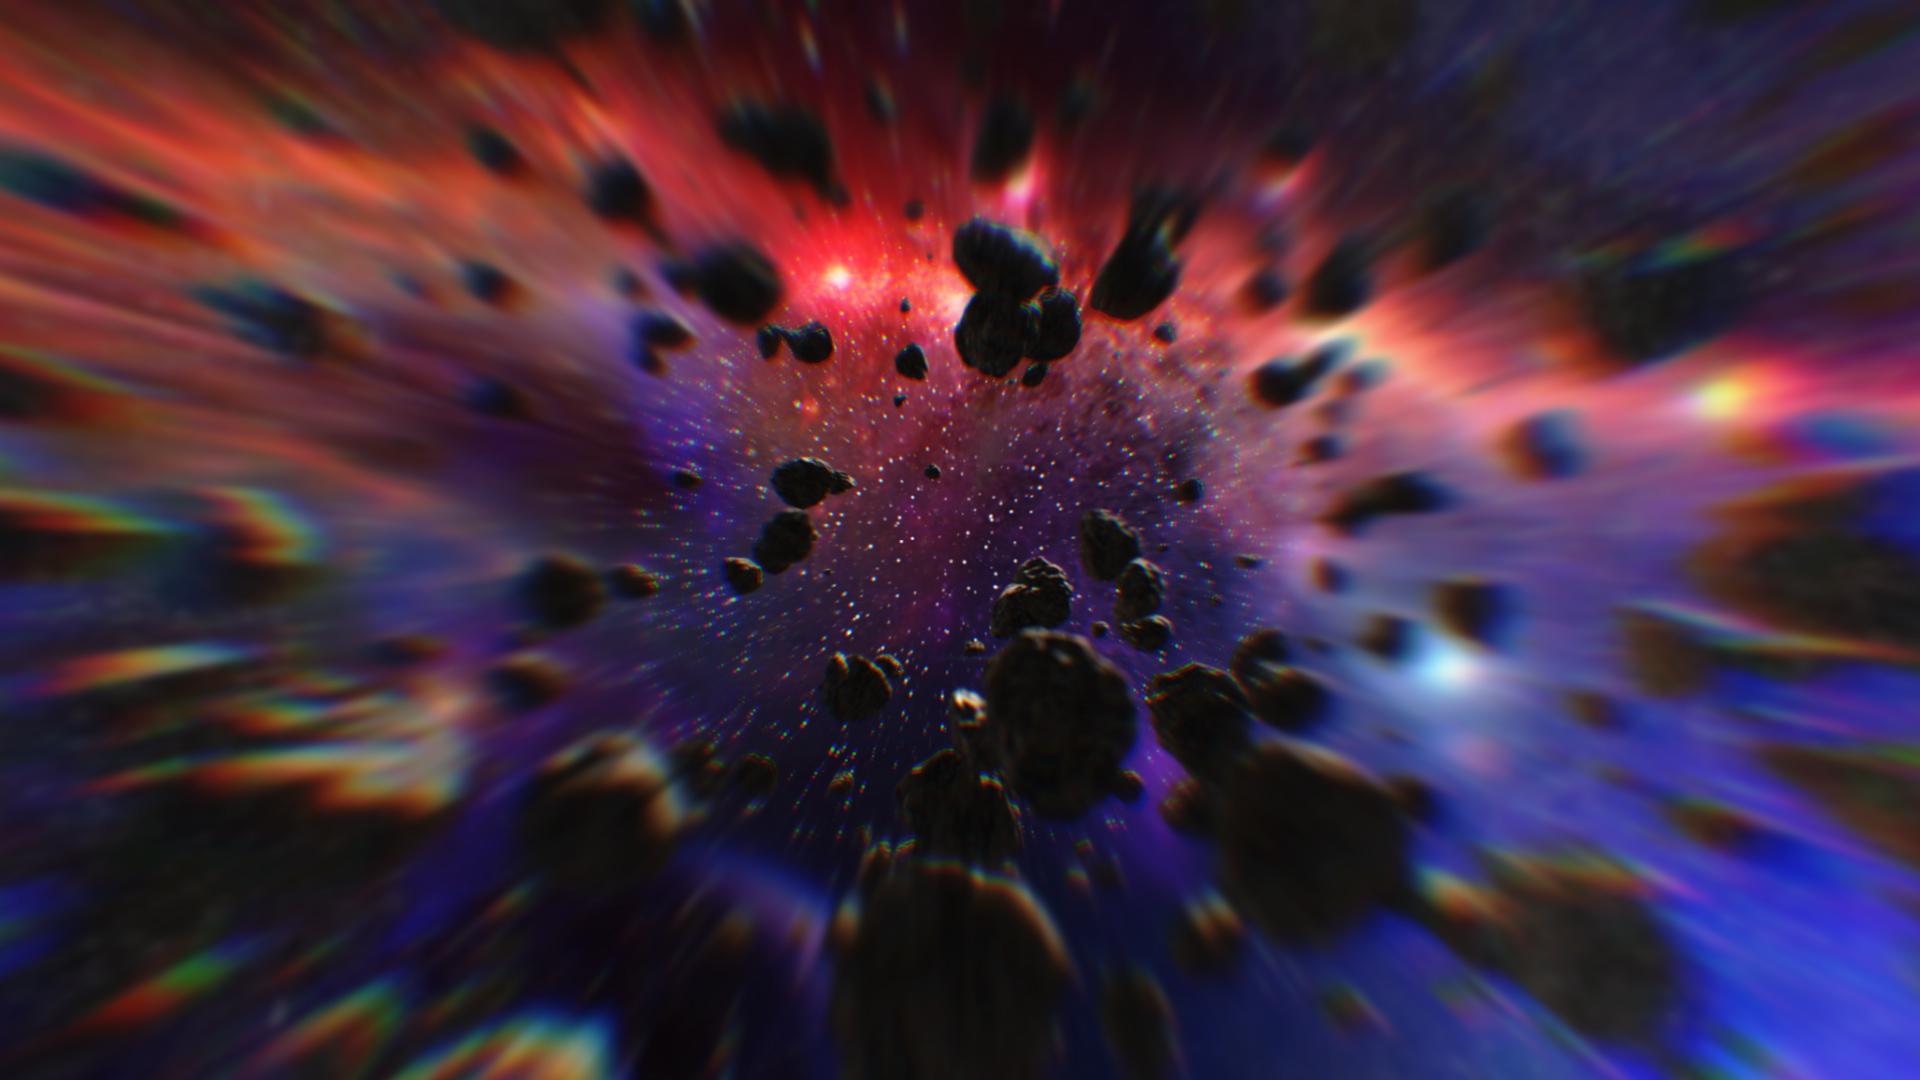 Red Giant Universe - Effects and Transitions for editors and motion graphics artists.